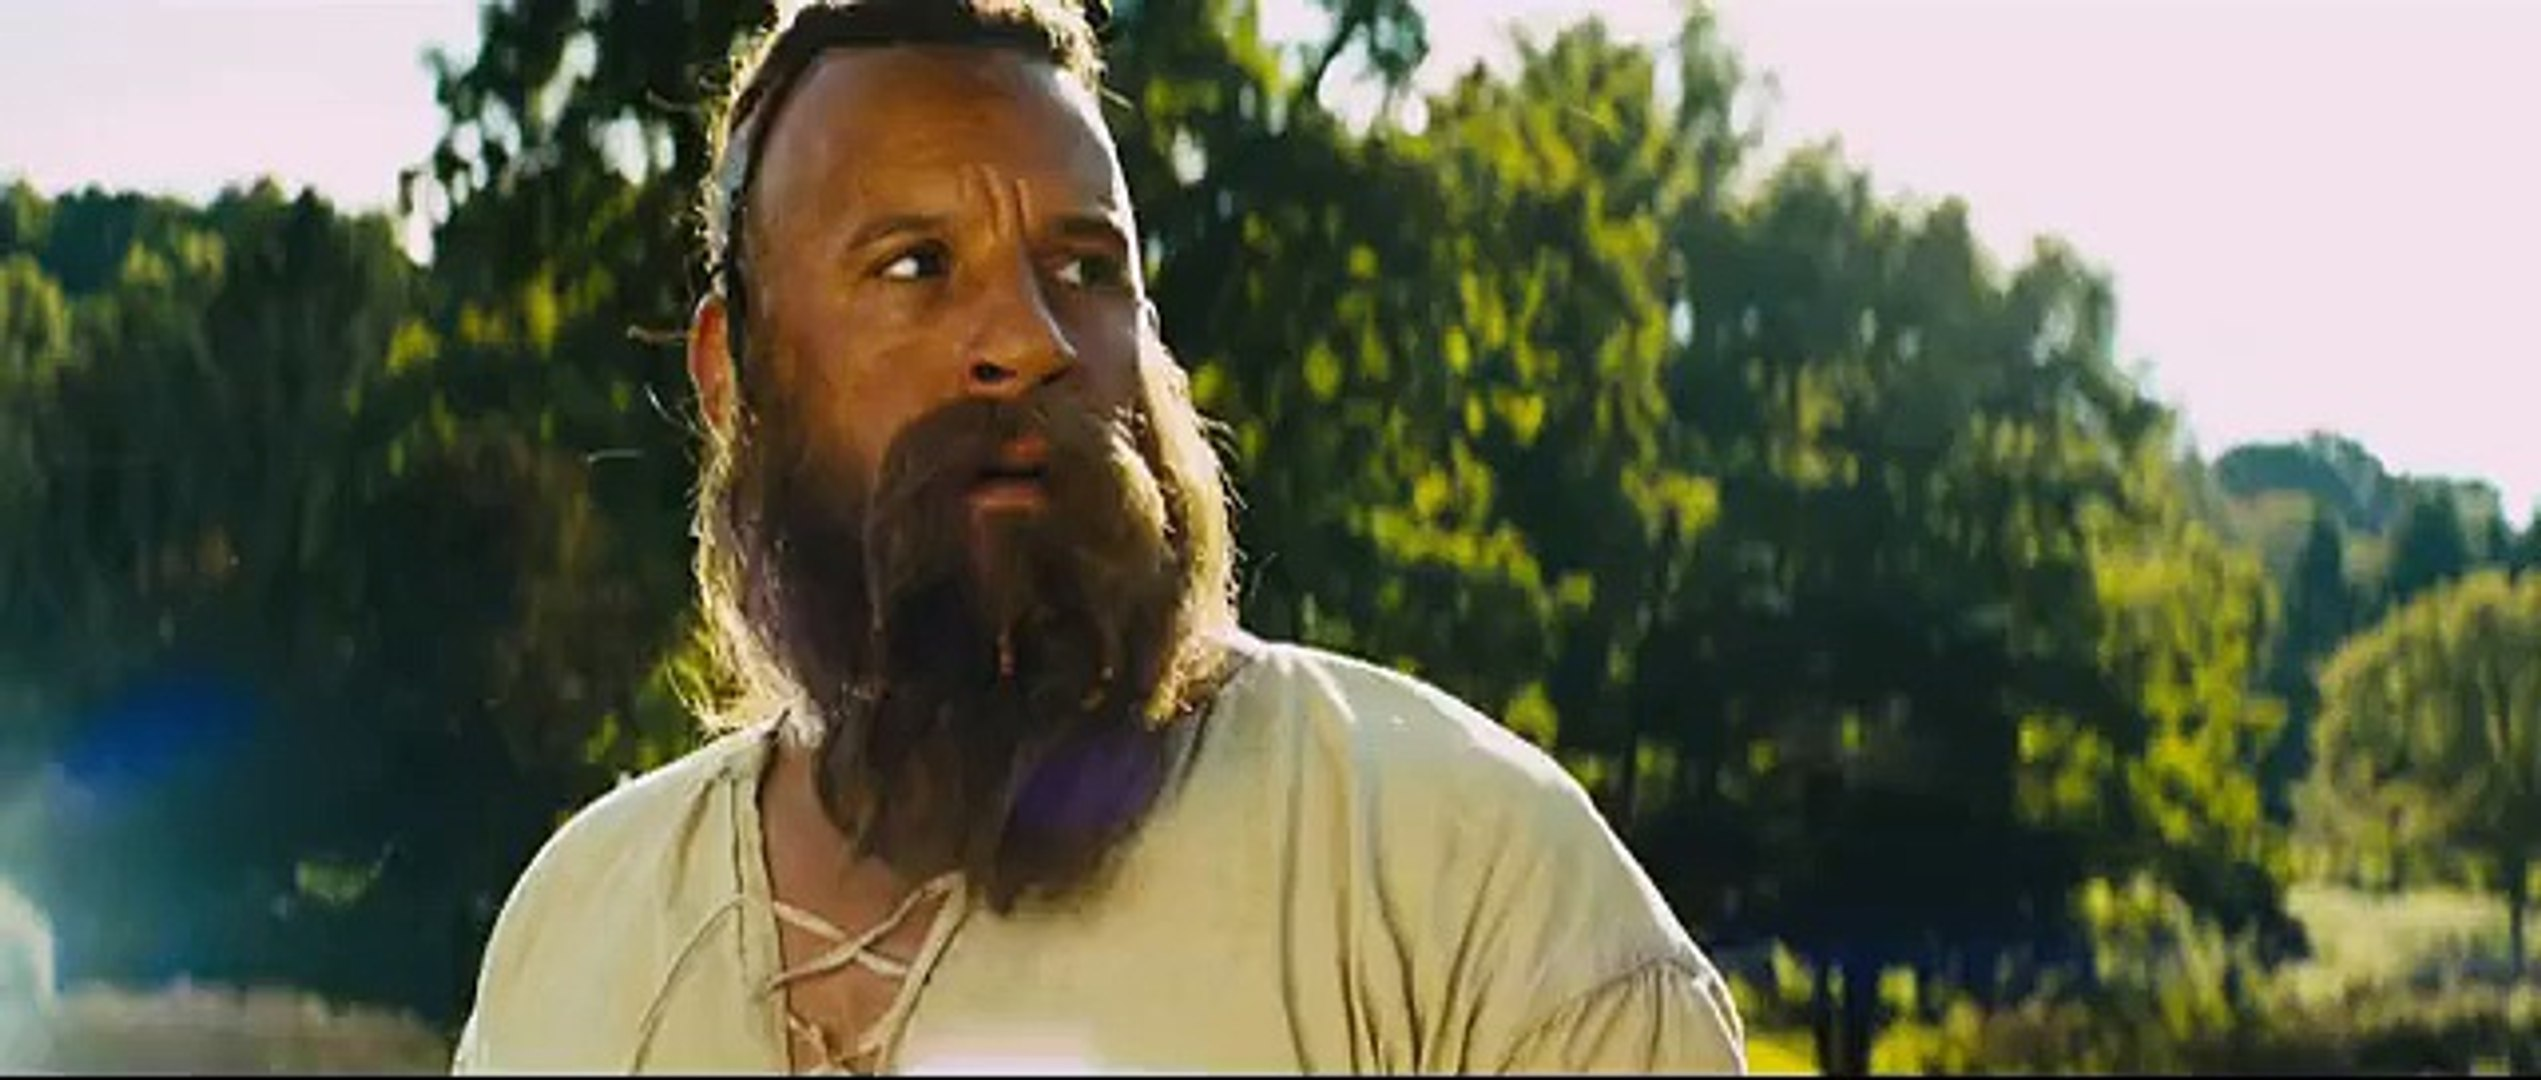 The Last Witch Hunter Official Trailer #1 (2015) - Vin Diesel, Michael Caine Fantasy Action Movie HD